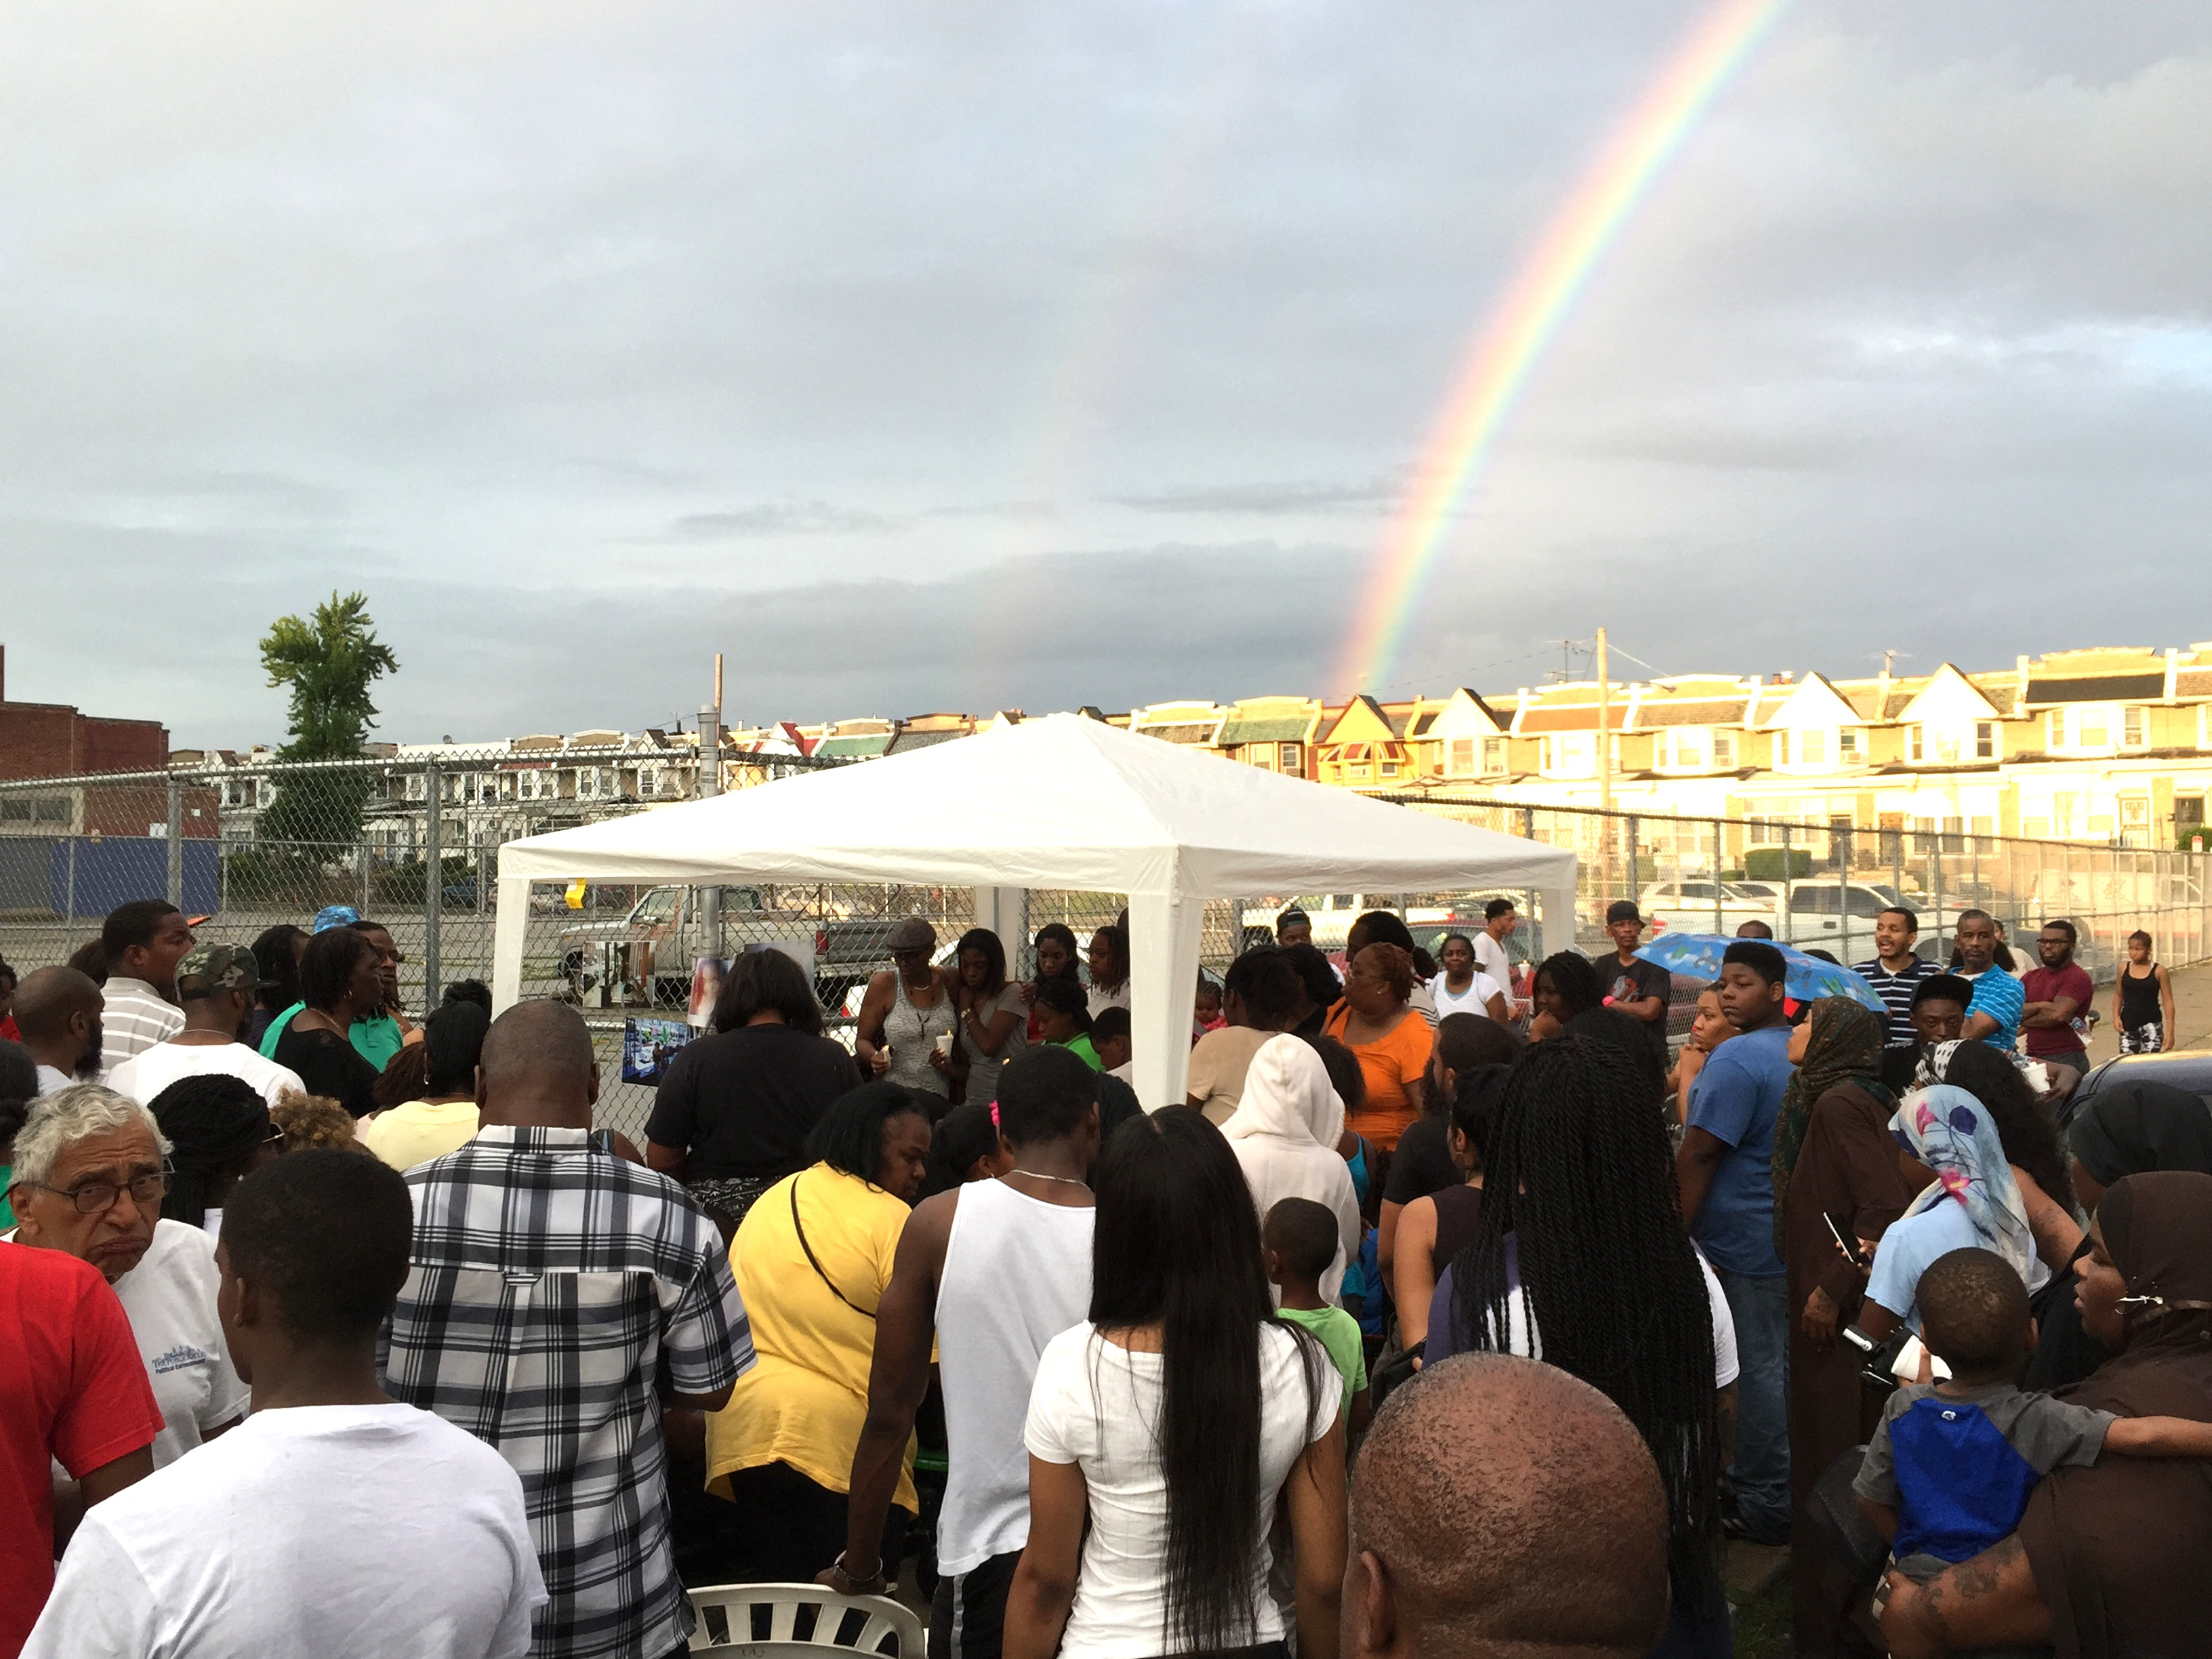 That Time A Rainbow Appeared Over A Vigil For A Homicide Victim In Philadelphia